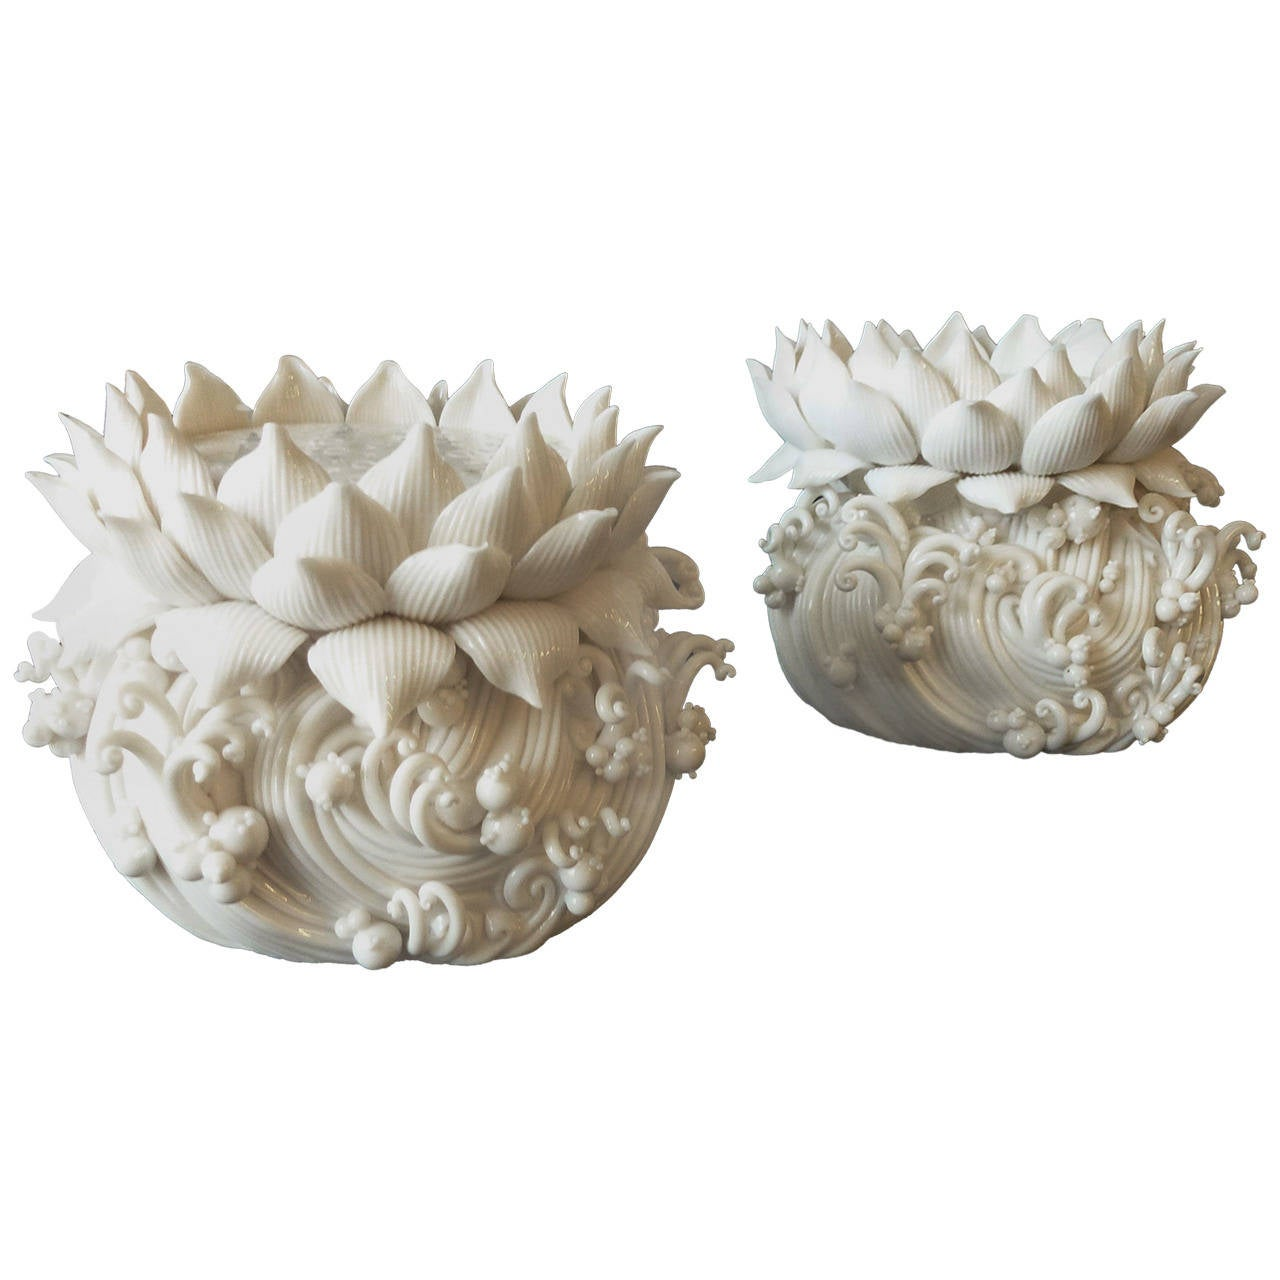 Pair of Lotus Stand Candle Holders by Peter Ting